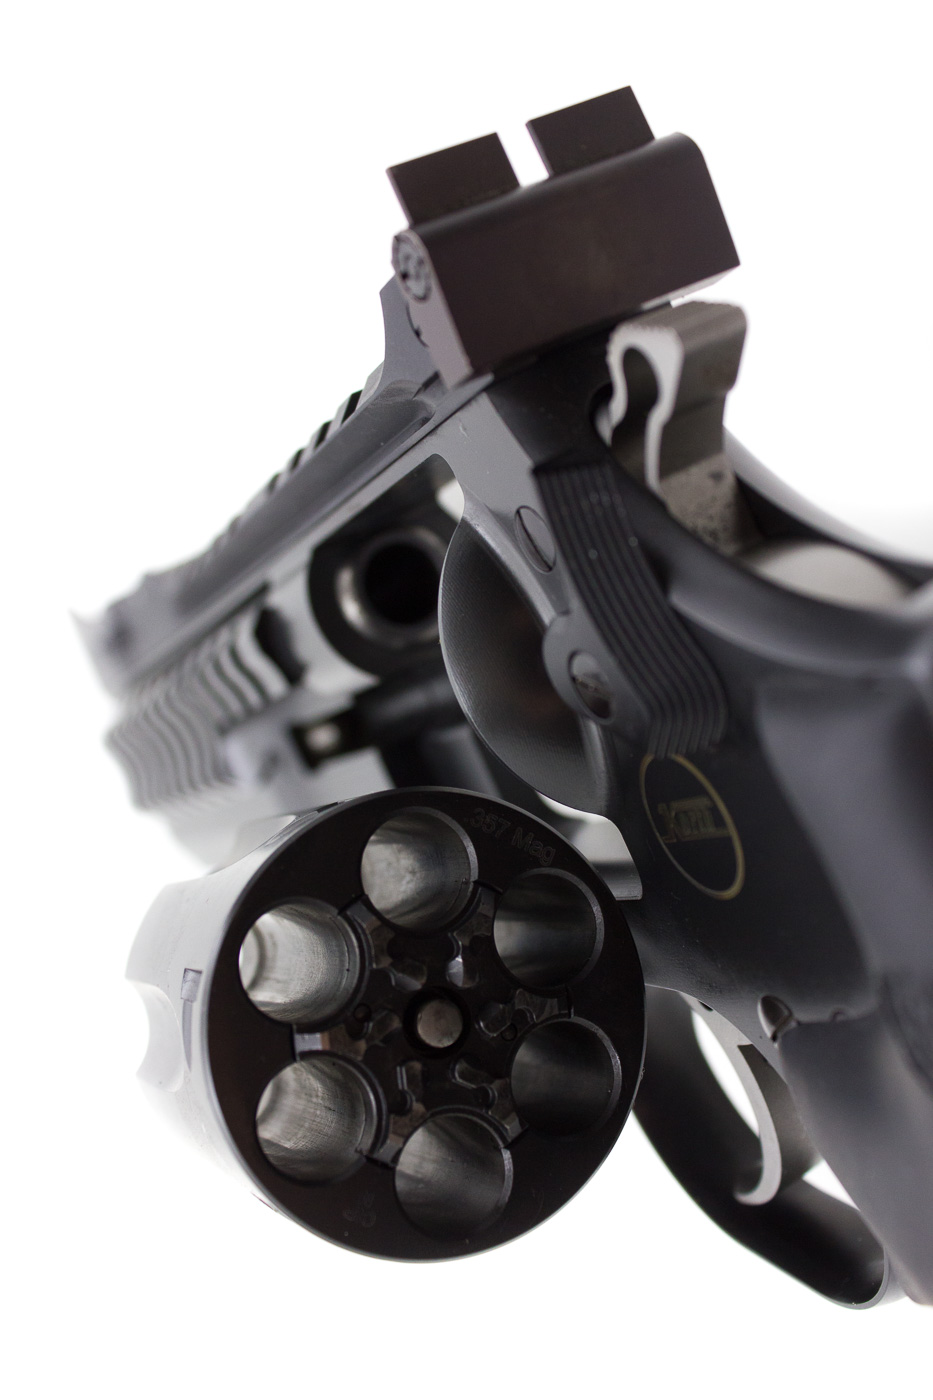 Korth National Standard Supersport STX .357 Magnum inkl. Wechseltrommel - Image 7